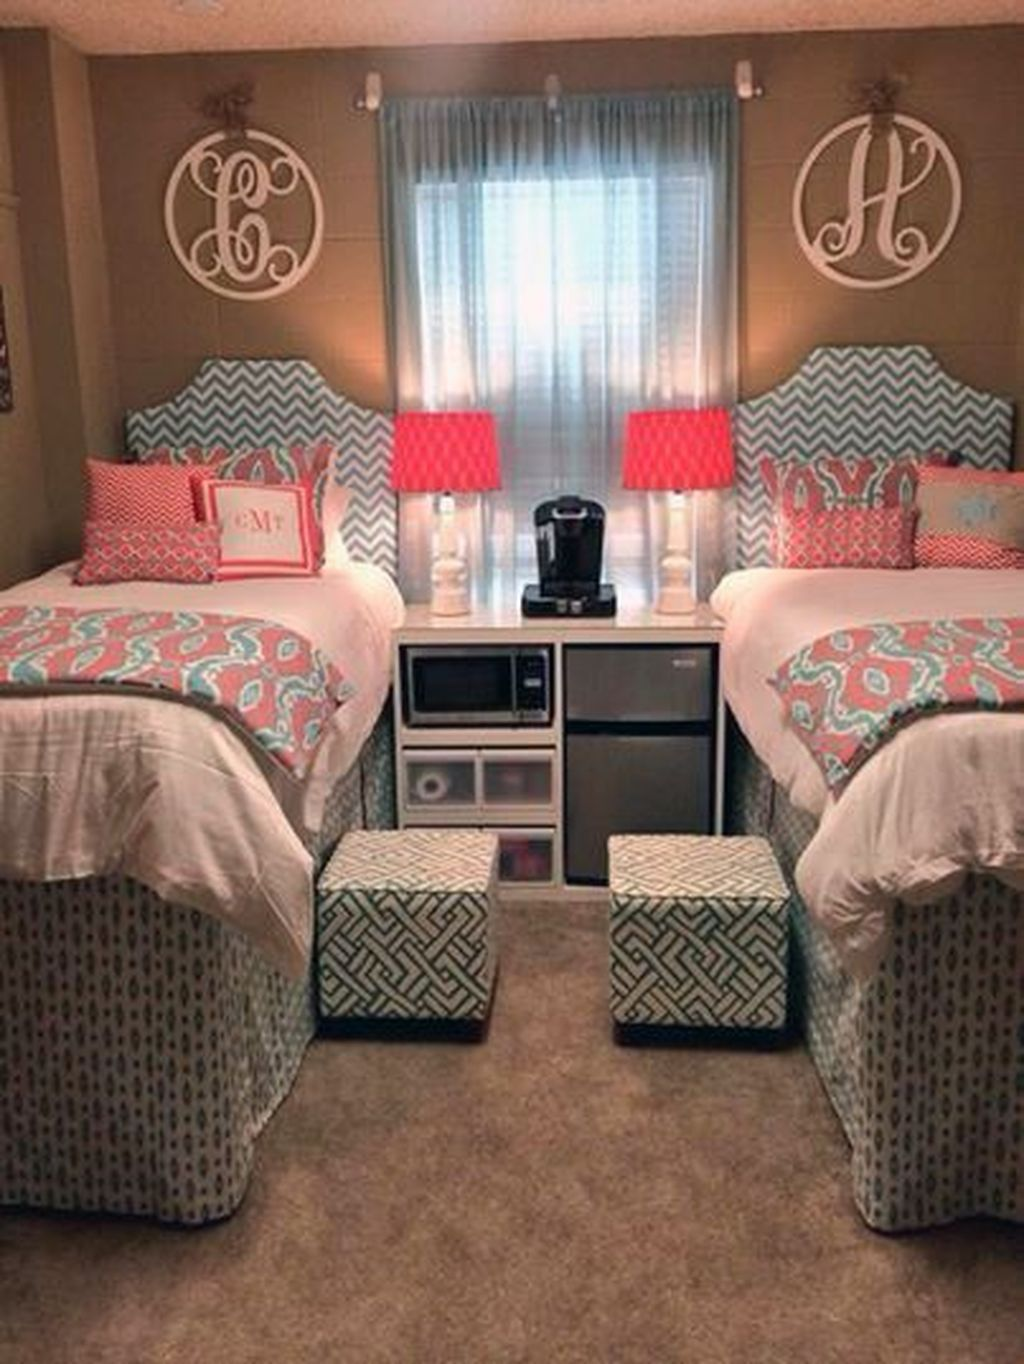 Ideas For Dorm Room: Cute Dorm Room Decorating Ideas On A Budget20